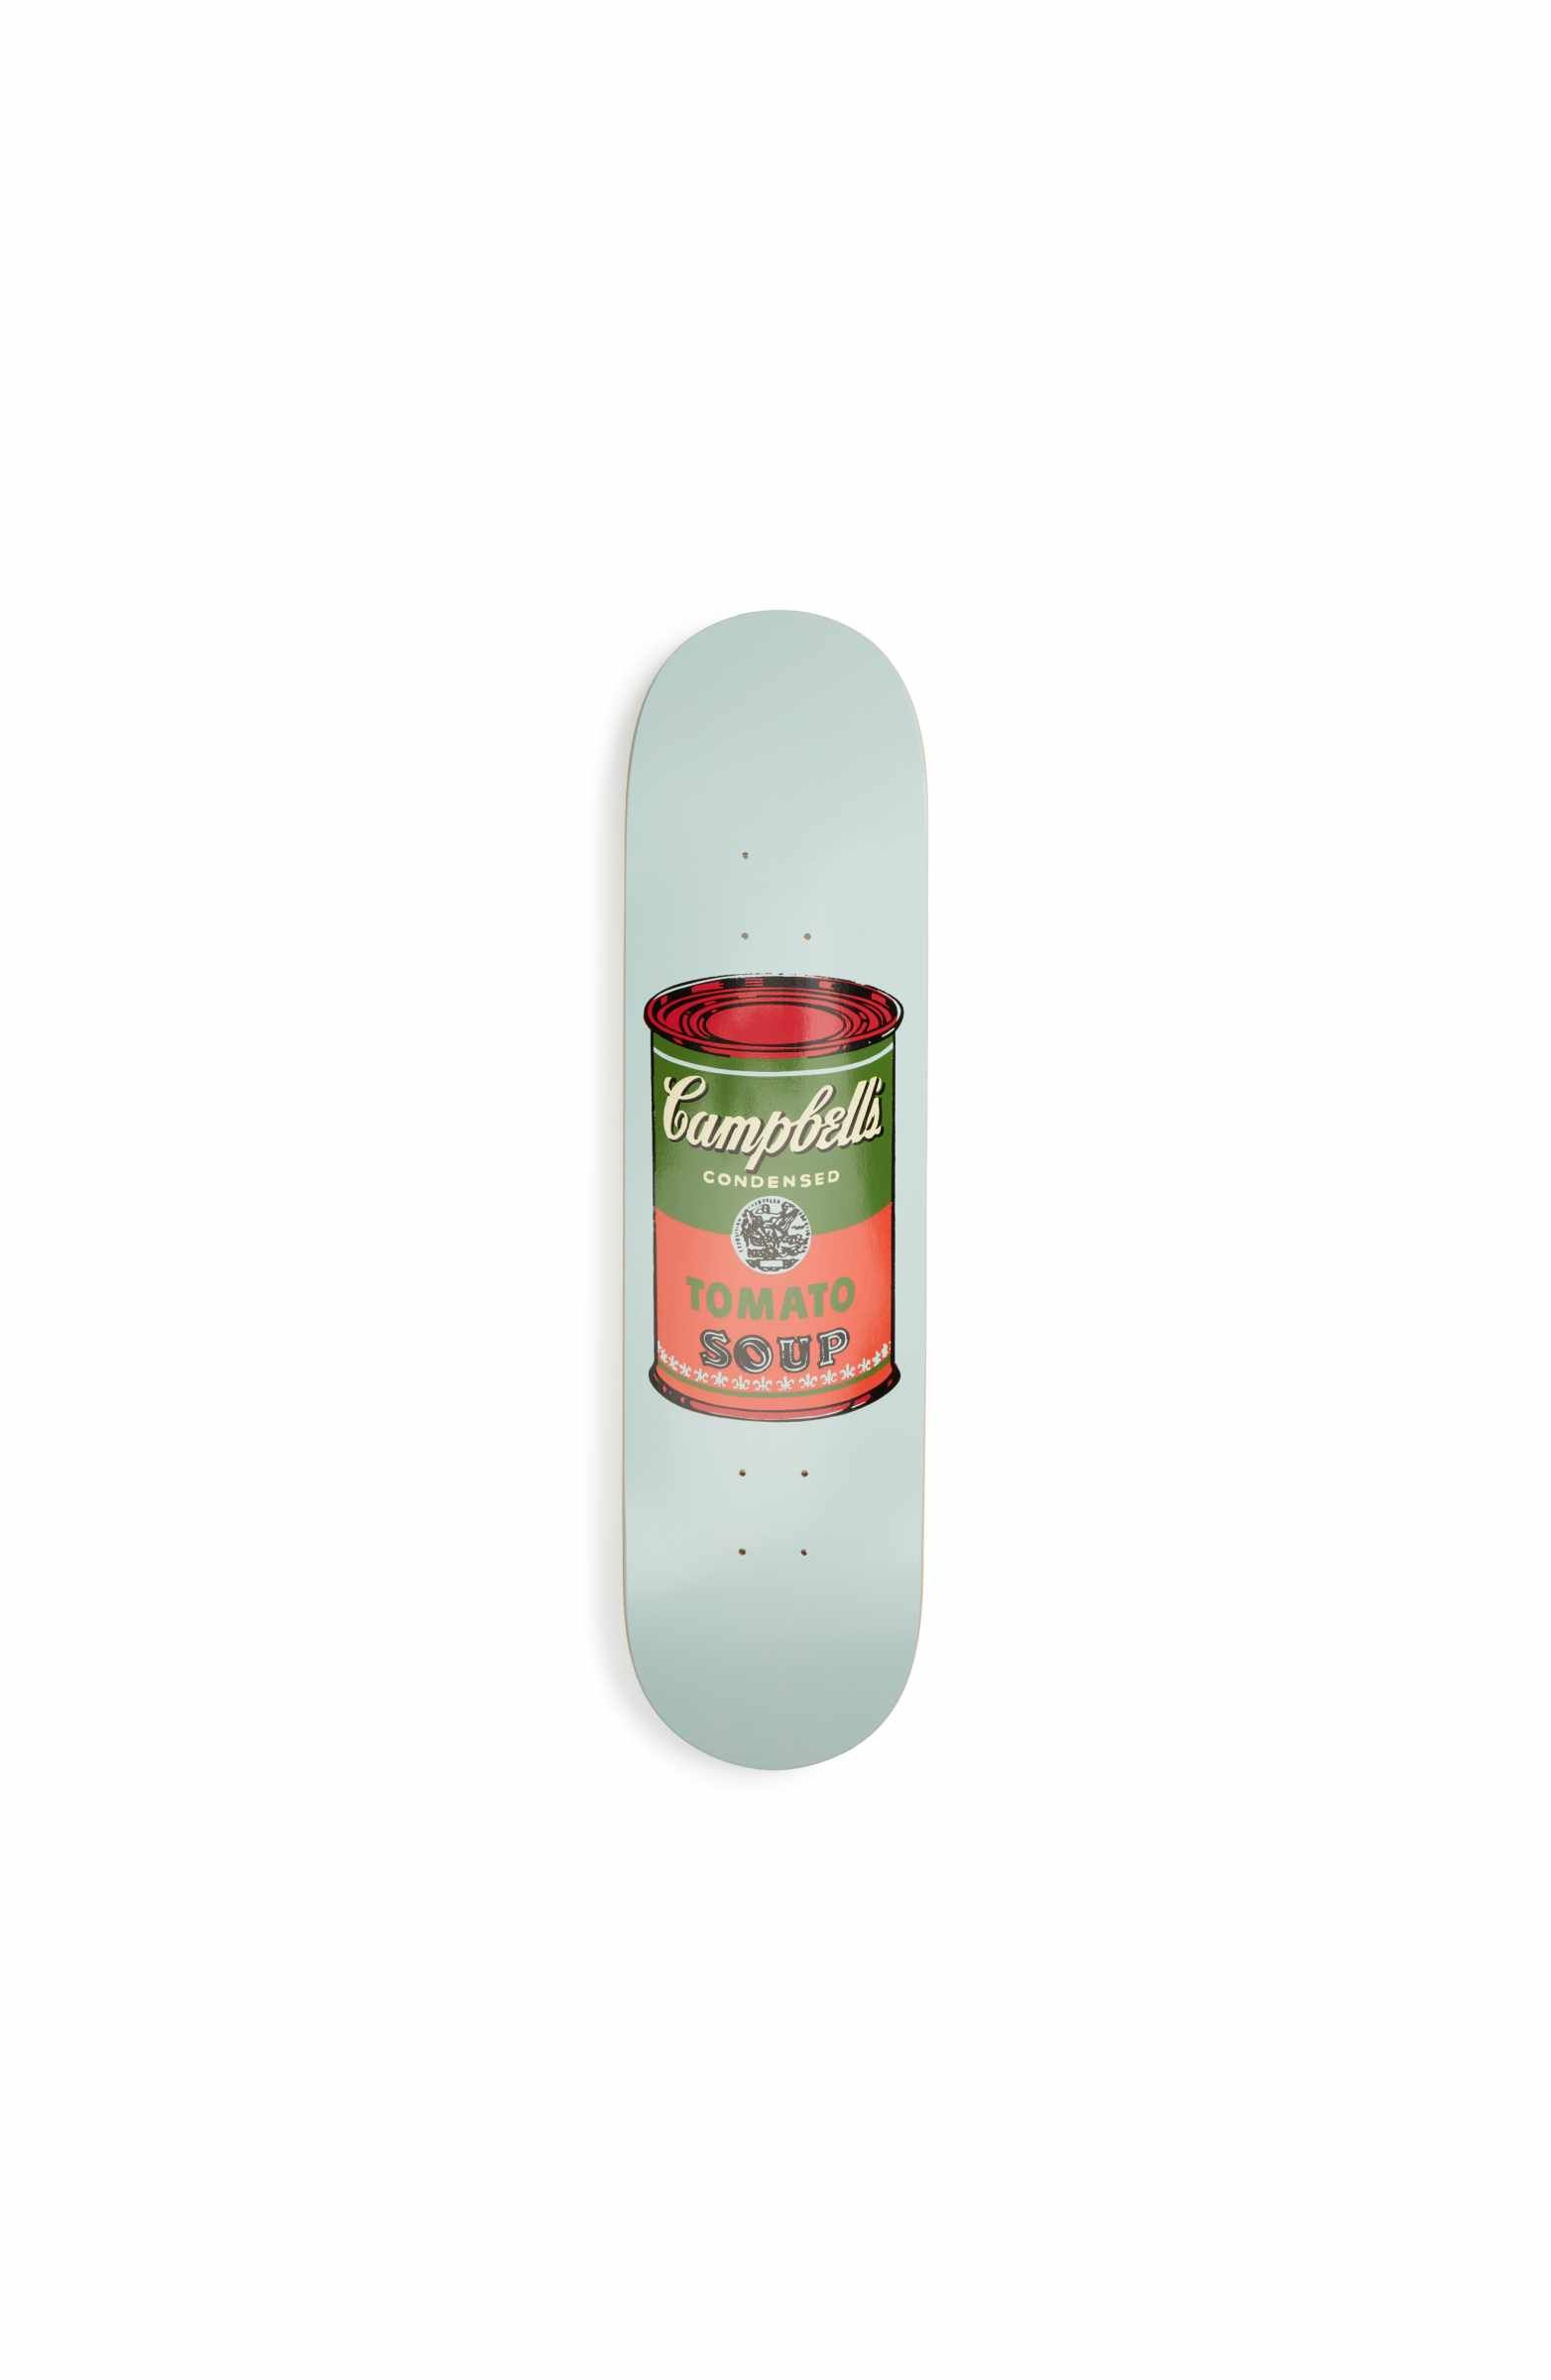 Moma Design Store Warhol Colored Campbell S Soup Cans Skateboard Deck Limited Edition Nordstrom Campbell S Soup Cans Campbell Soup Campbells